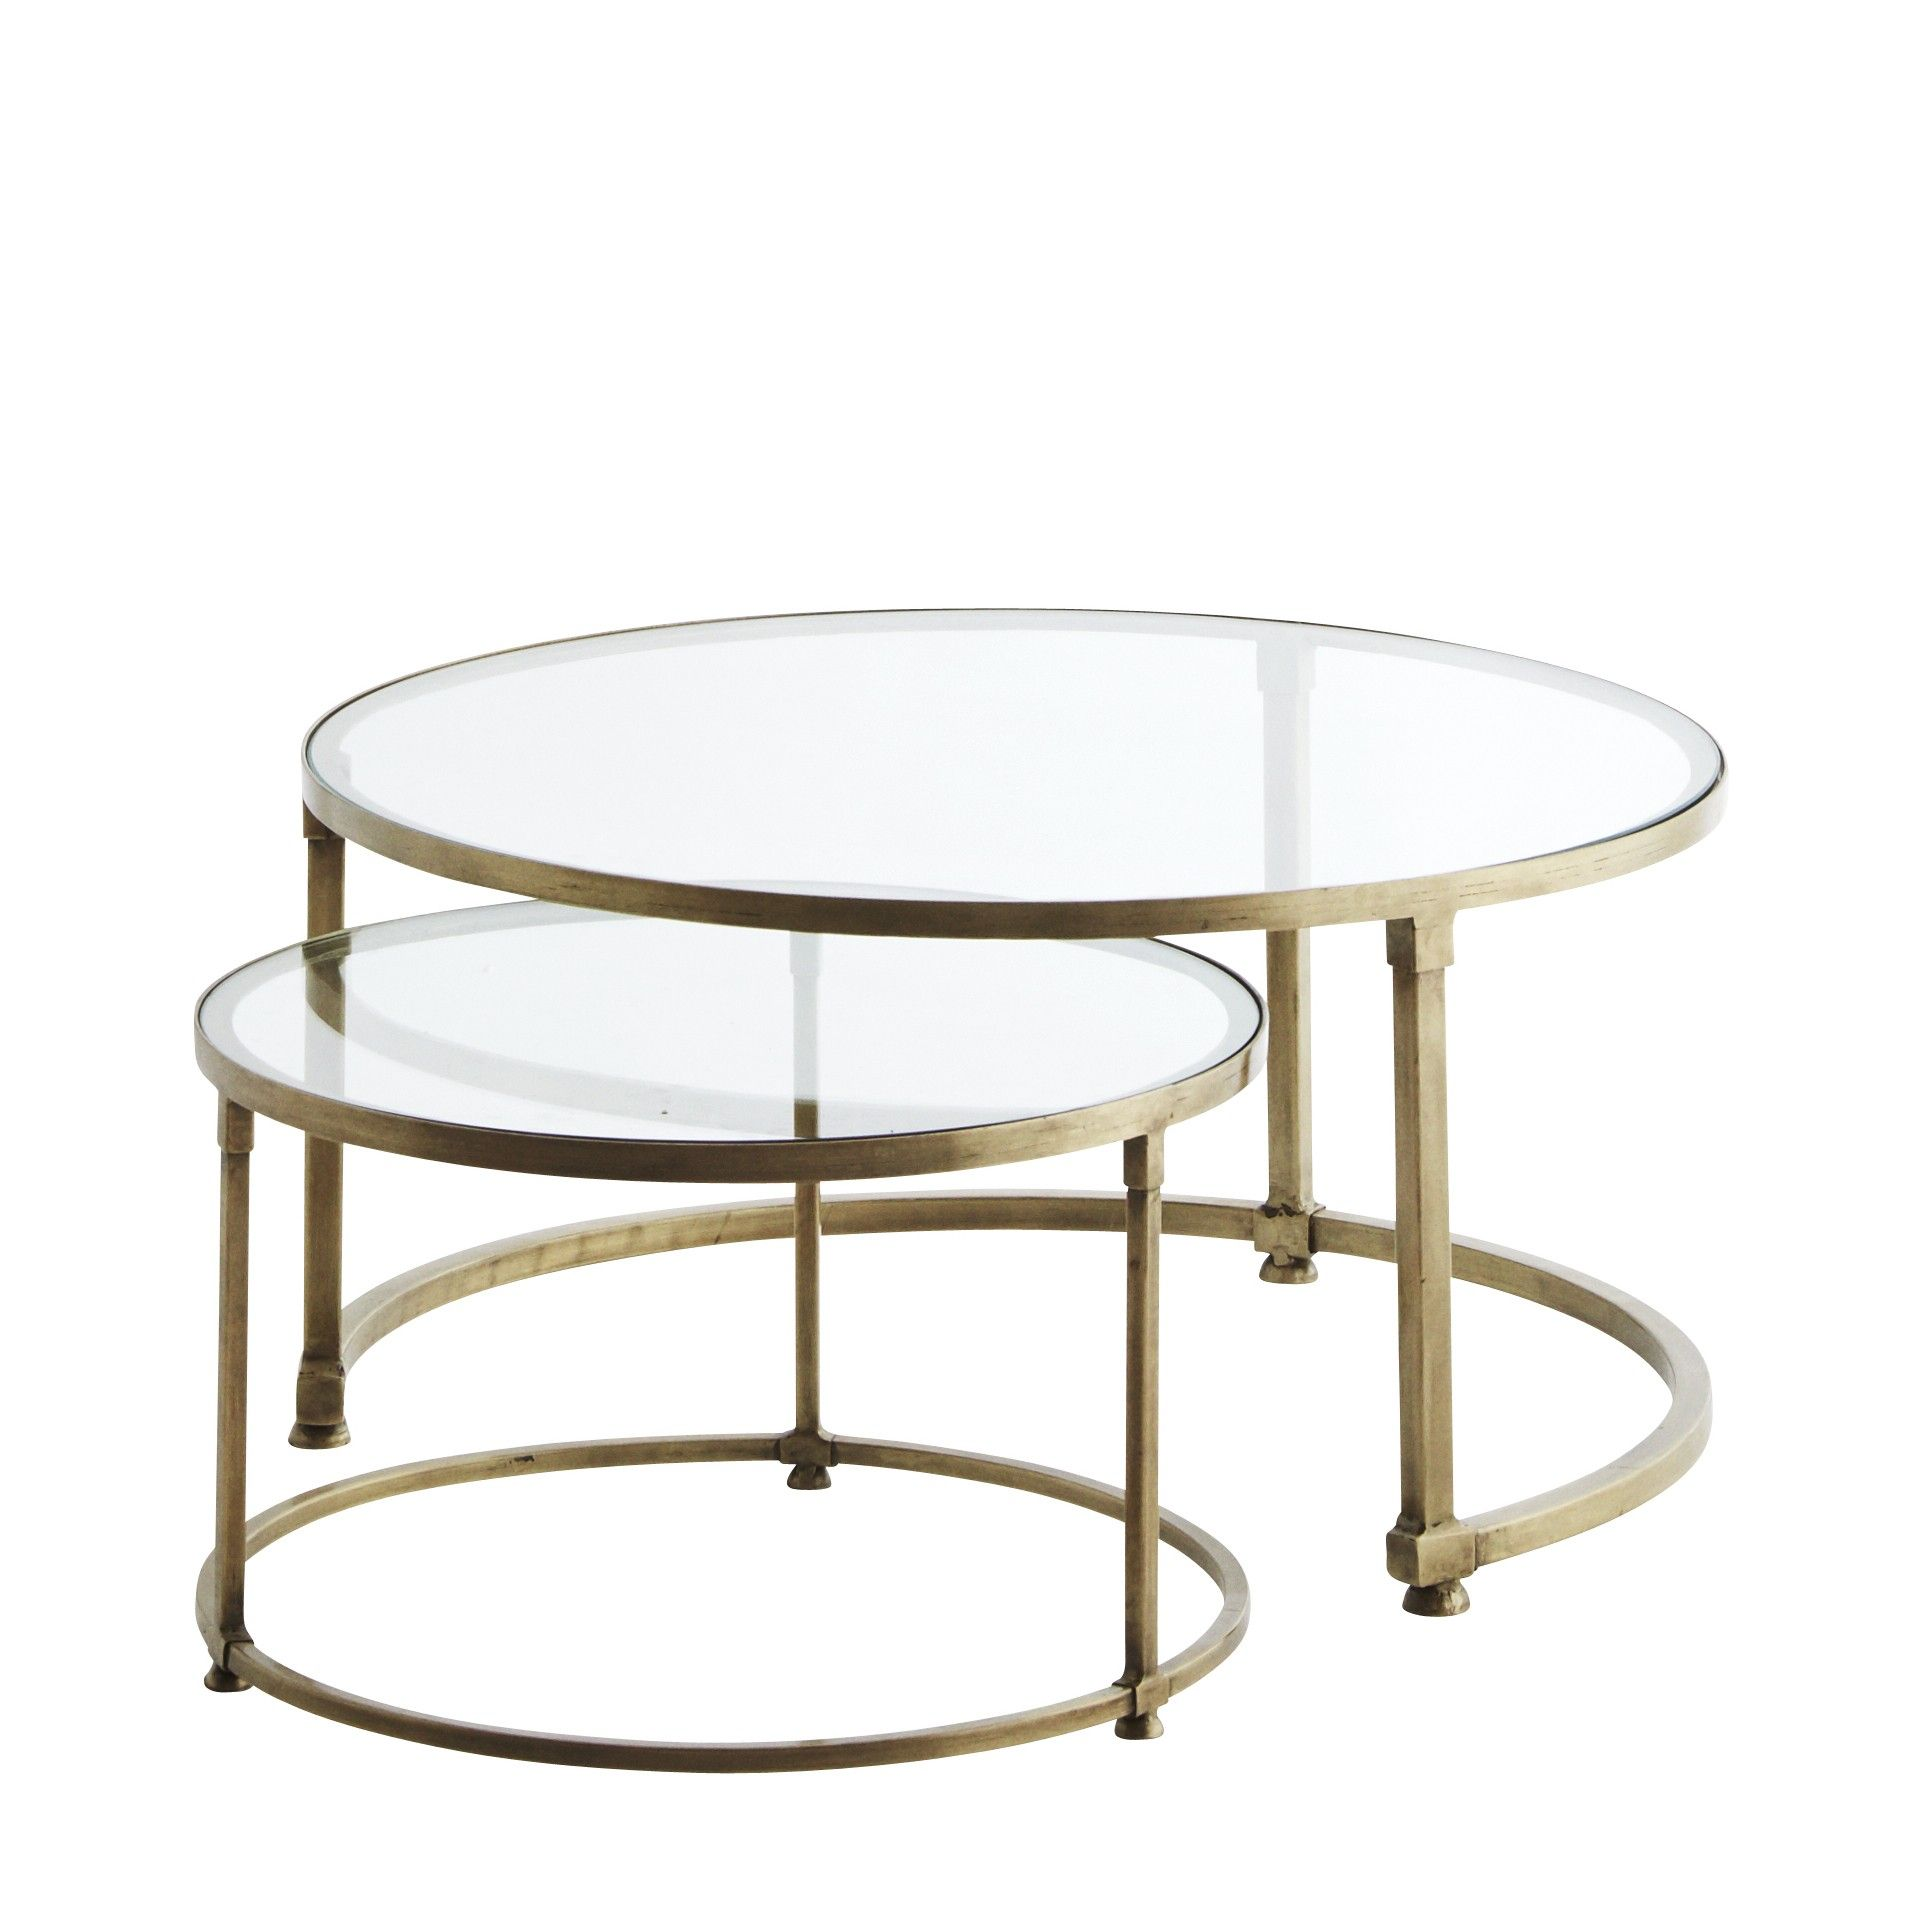 Set of Glass Topped Coffee Table Design Vintage